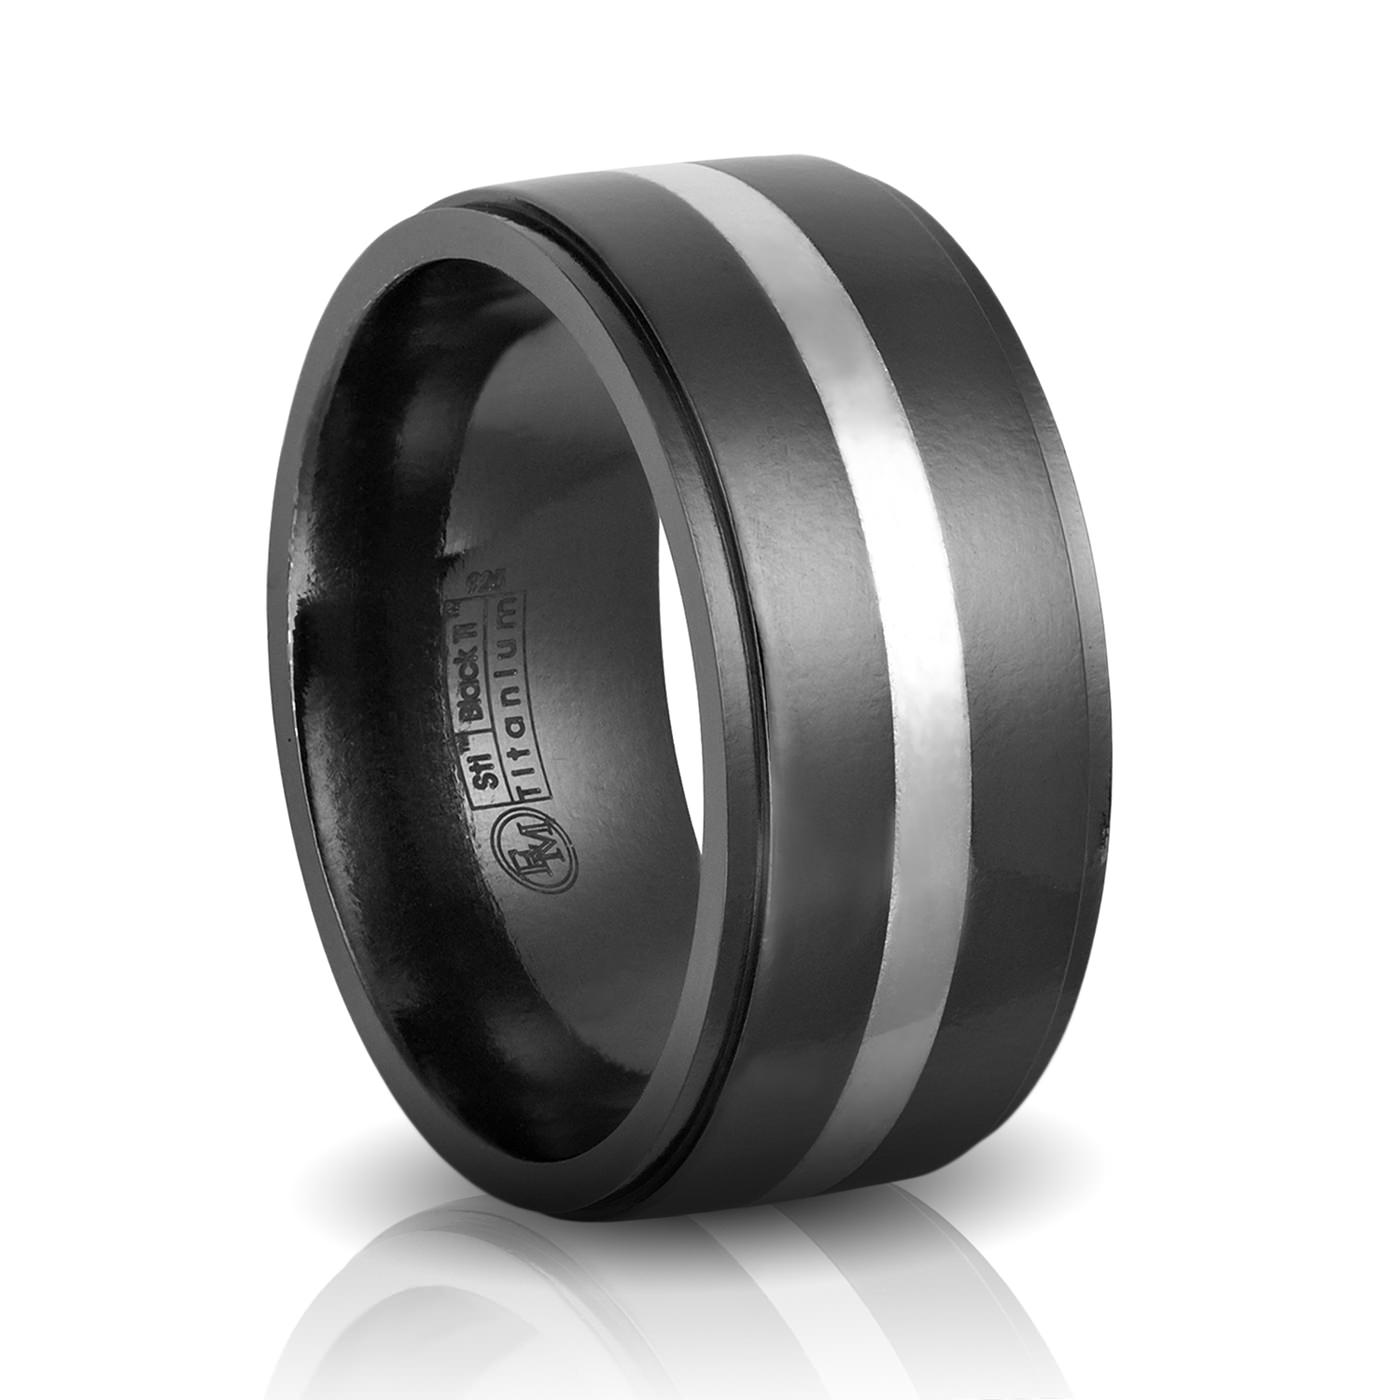 product titanium dragon chinese engagement lord never golden for rings band fade men steel top mens jewelry quality vintage unique bands tungsten ring wedding punk new